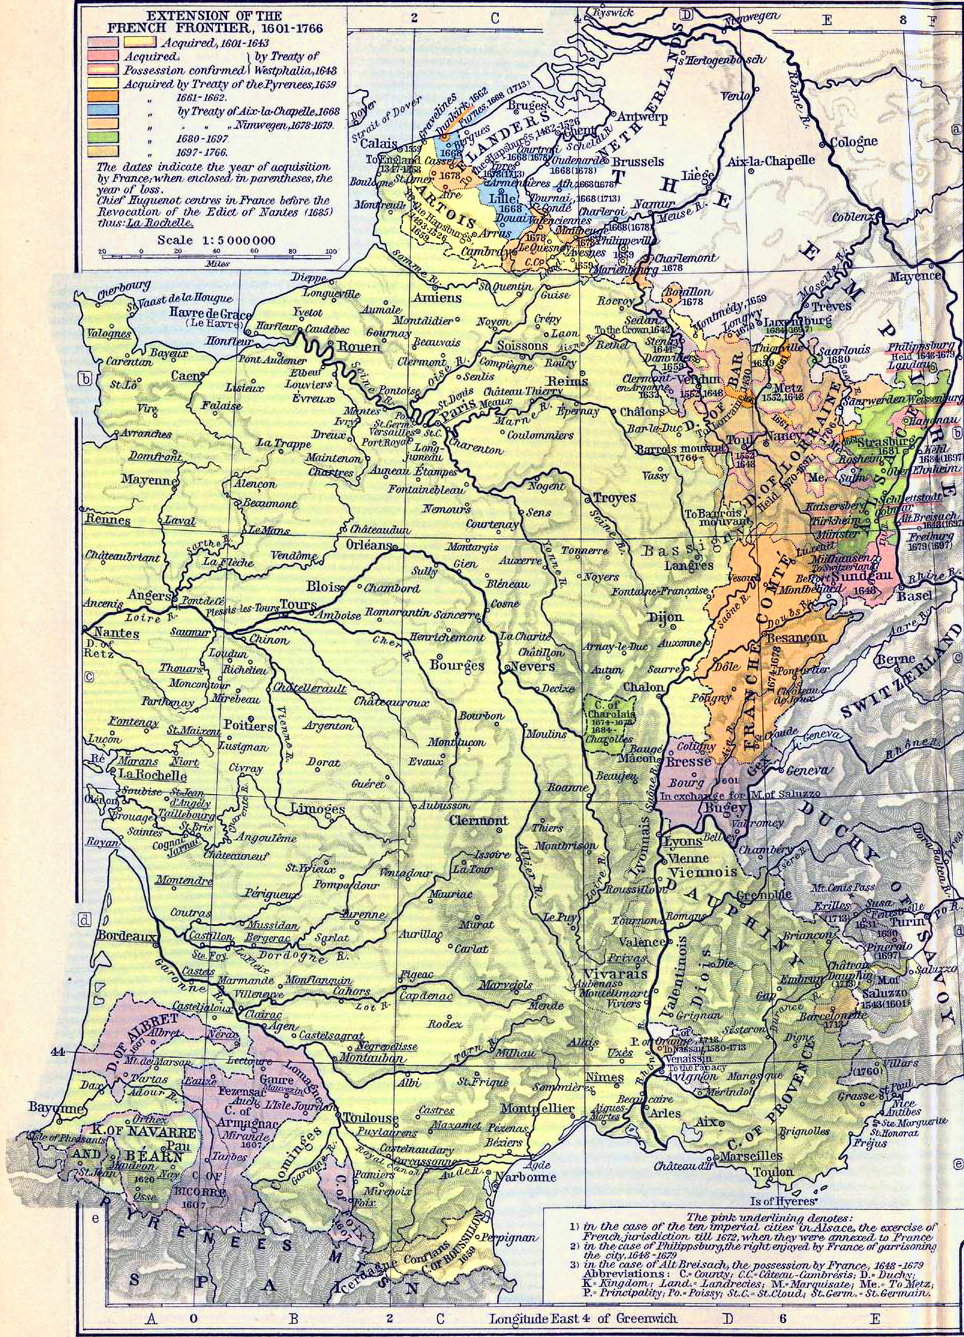 Map of the Extension of the French Frontier 1601-1766